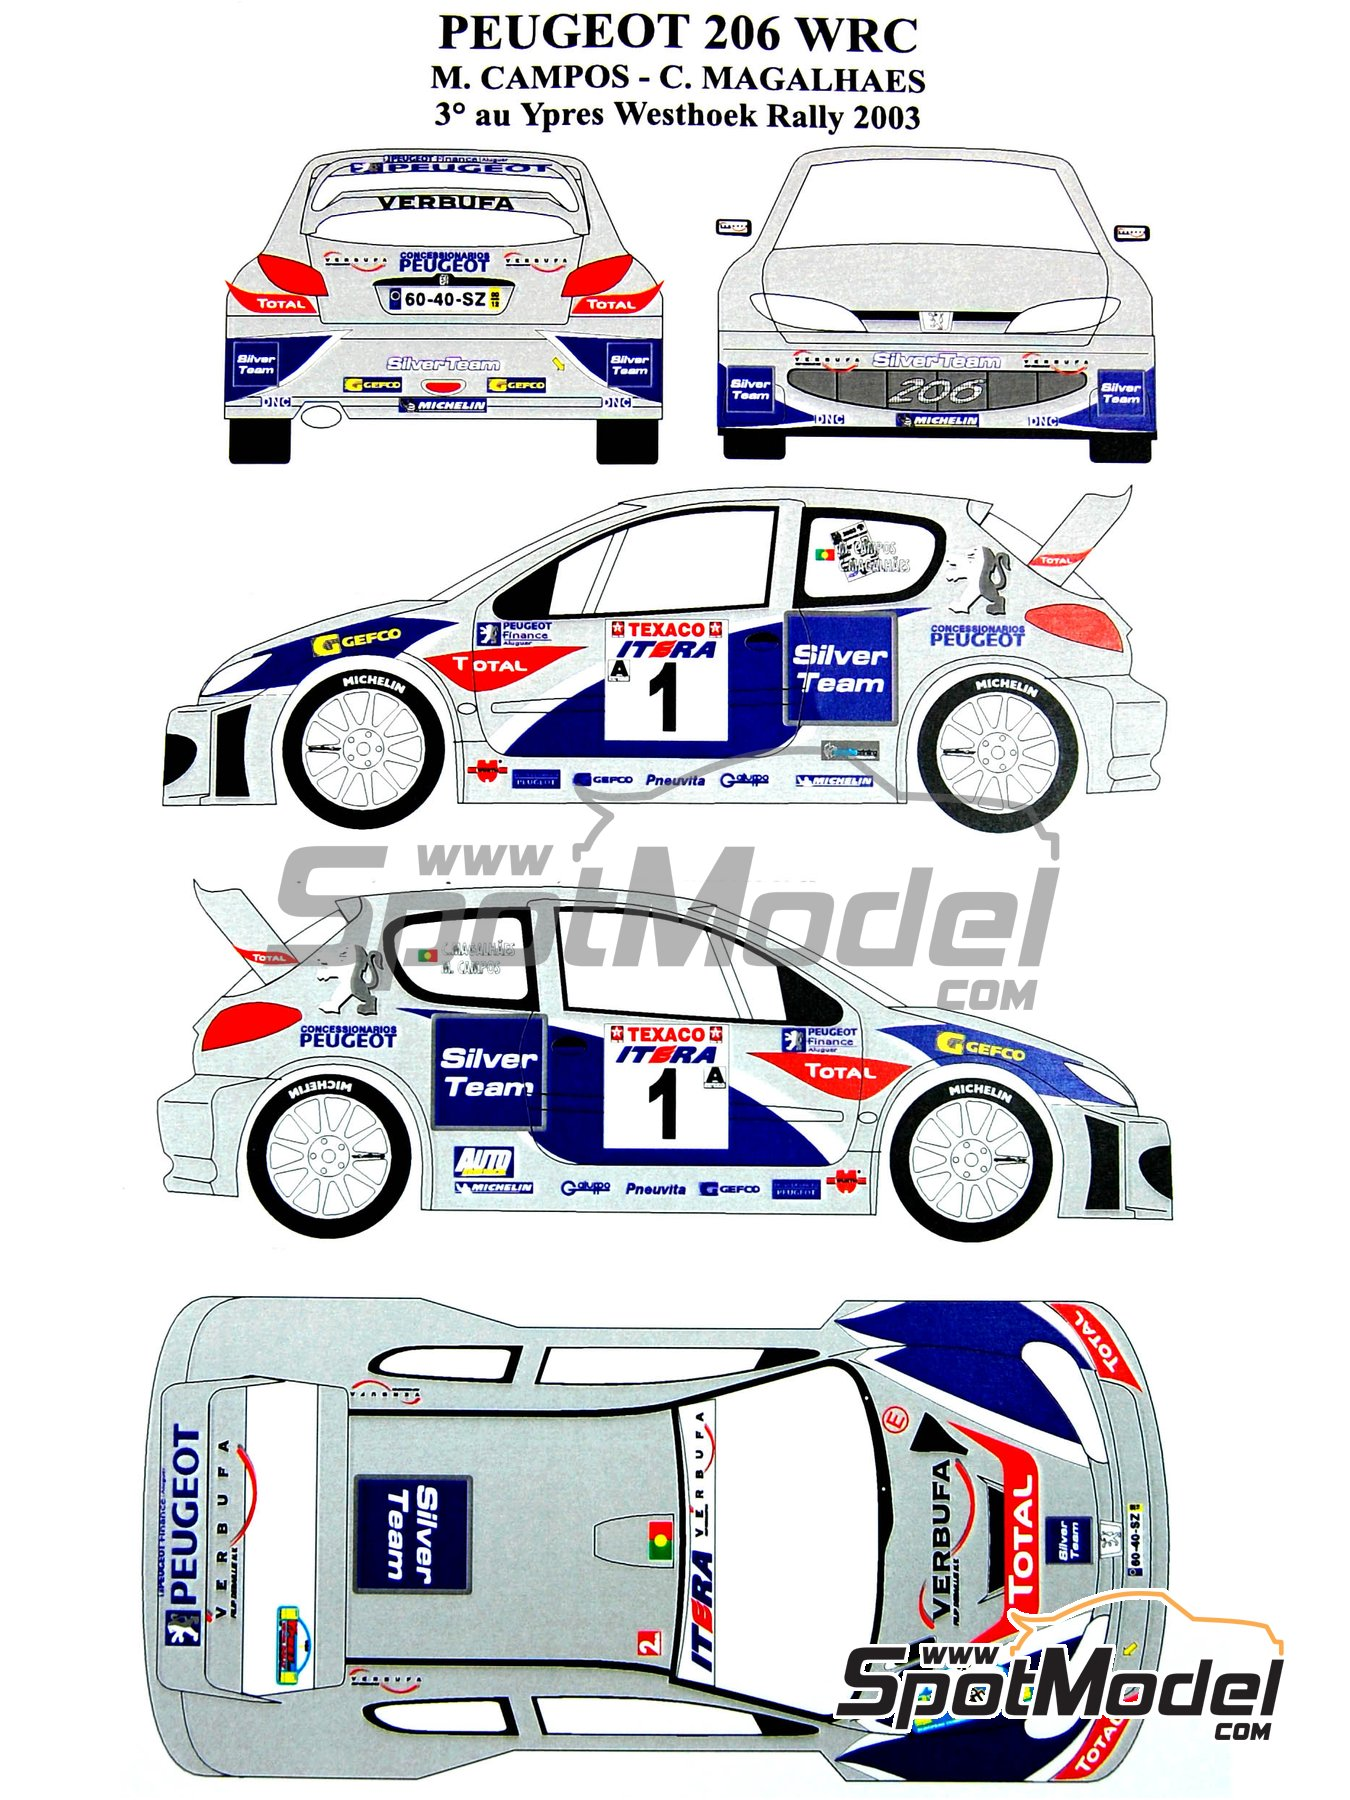 Peugeot 206 WRC Silver Team - Ypres Rally 2003   Marking / livery in 1/24 scale manufactured by Renaissance Models (ref.TK24-165) image